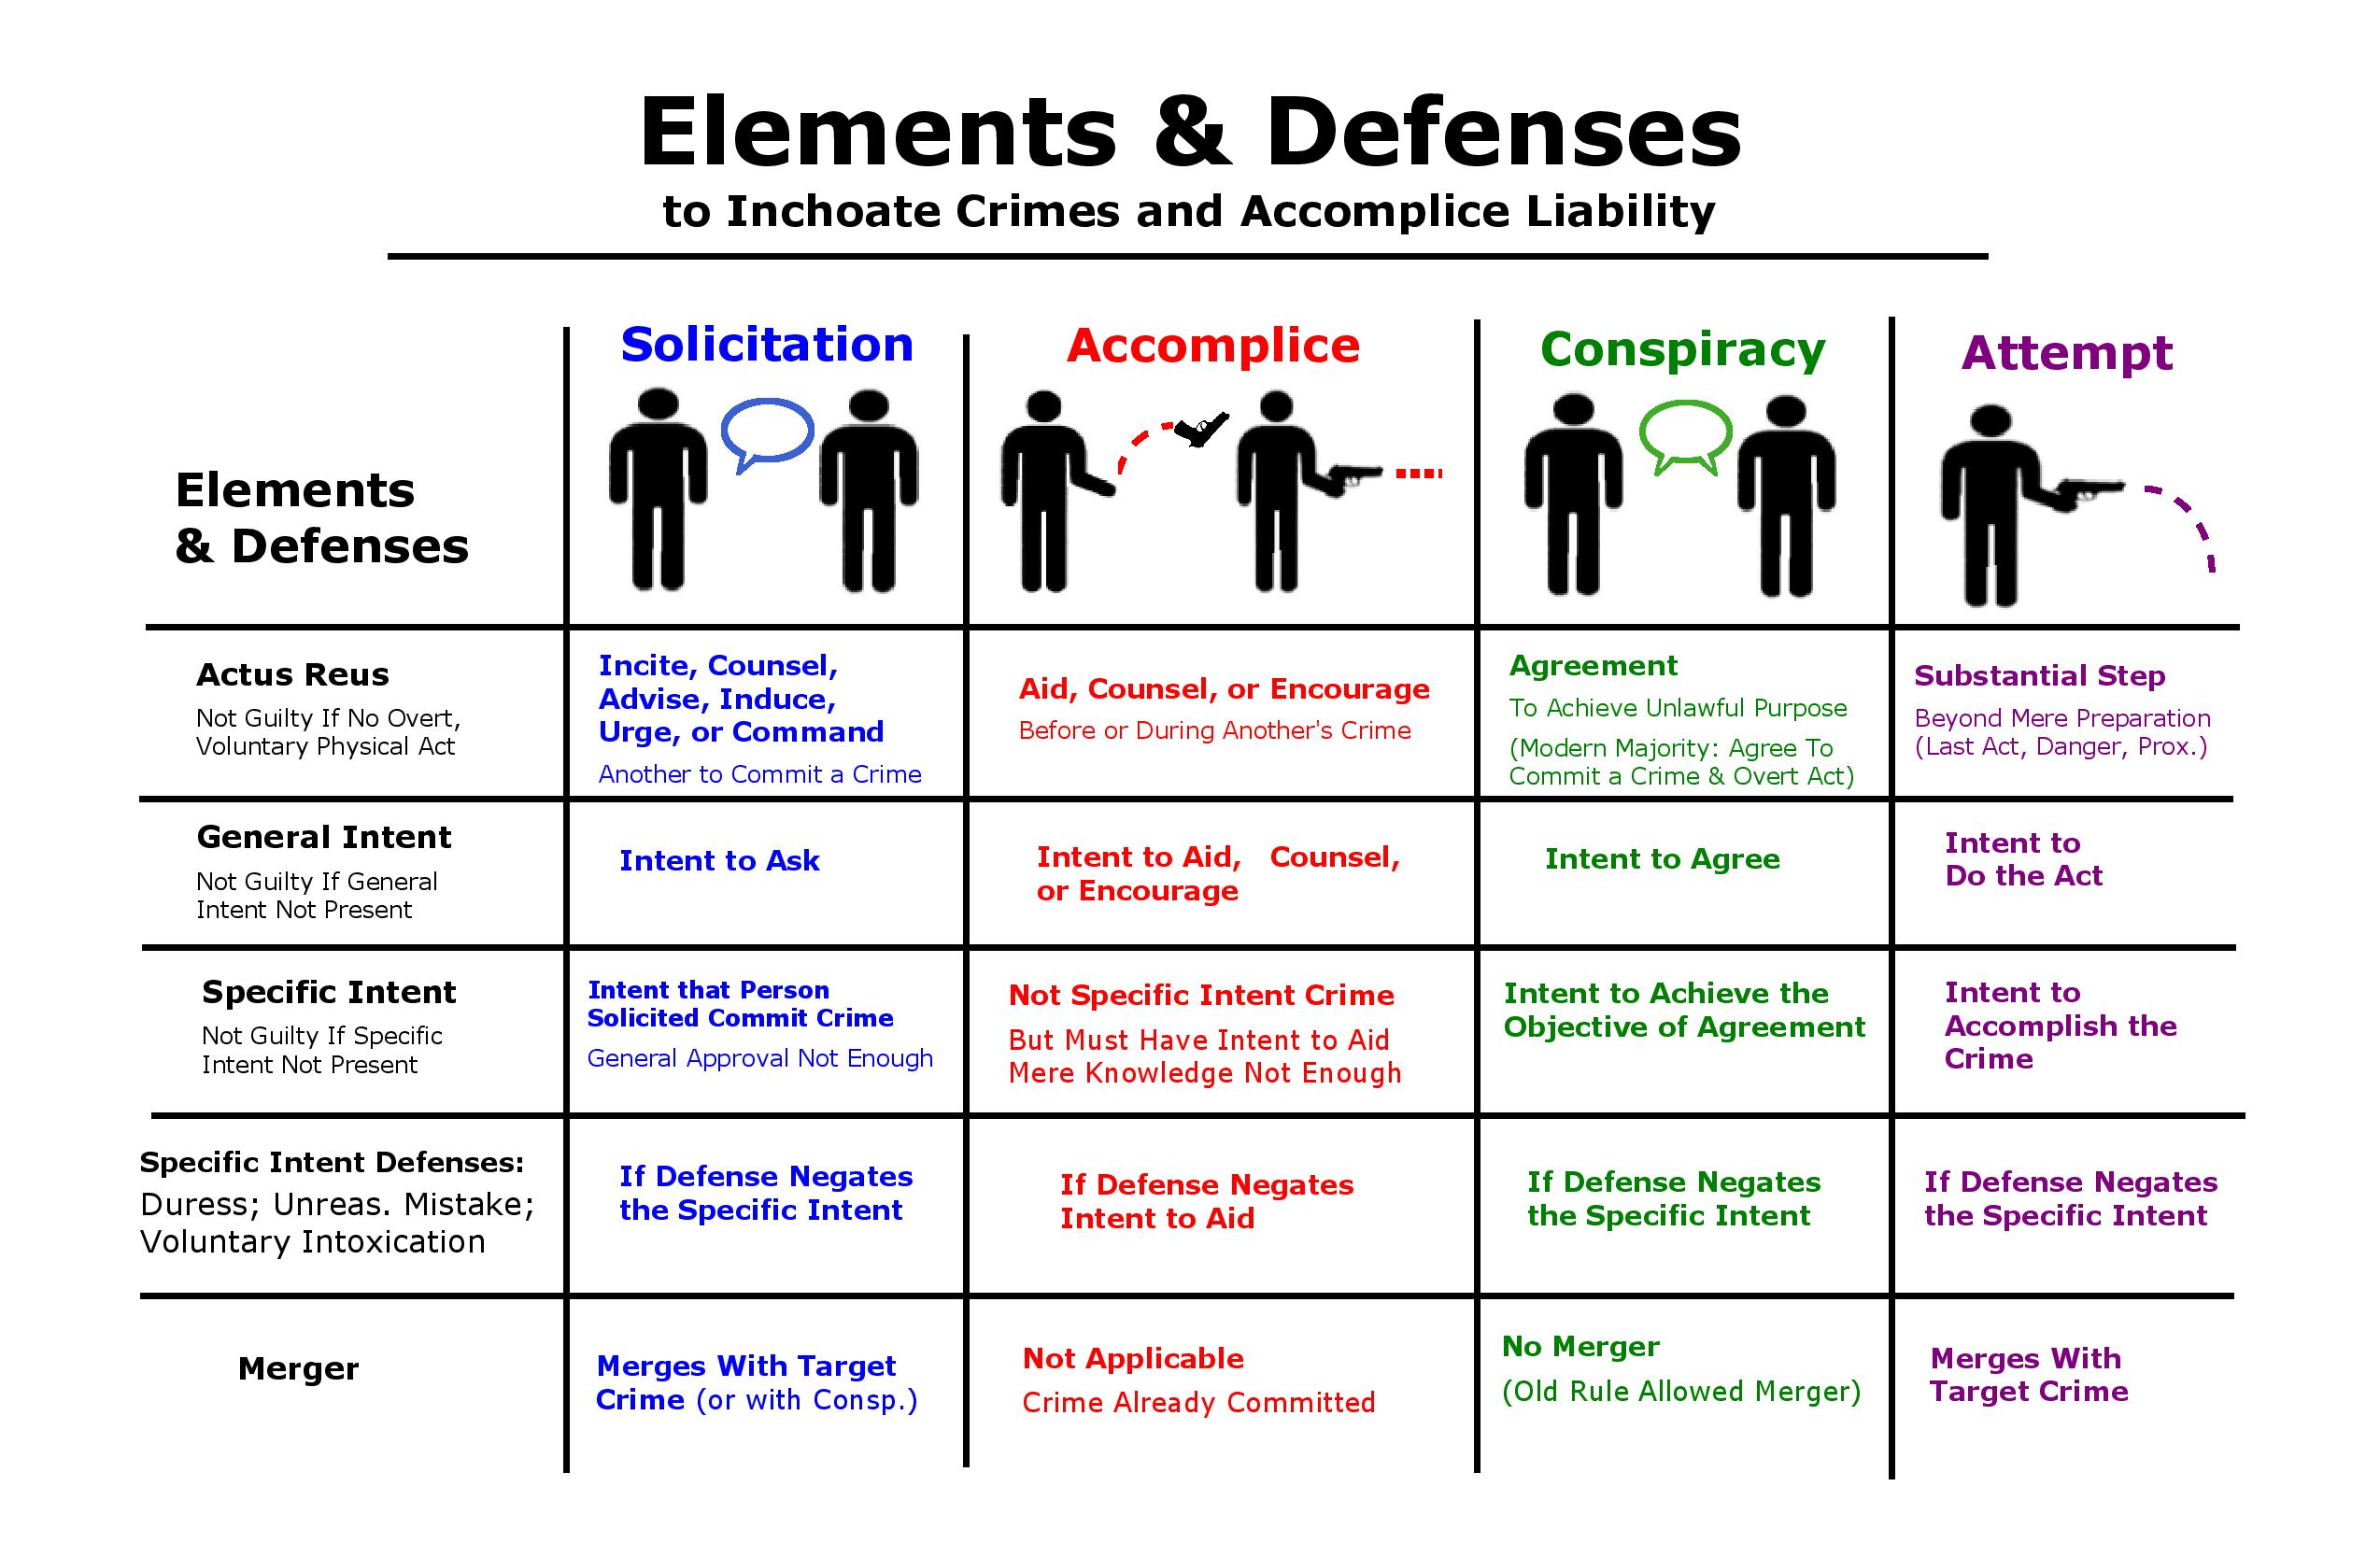 Inchoate-Crimes-Elements-and-Defenses-1